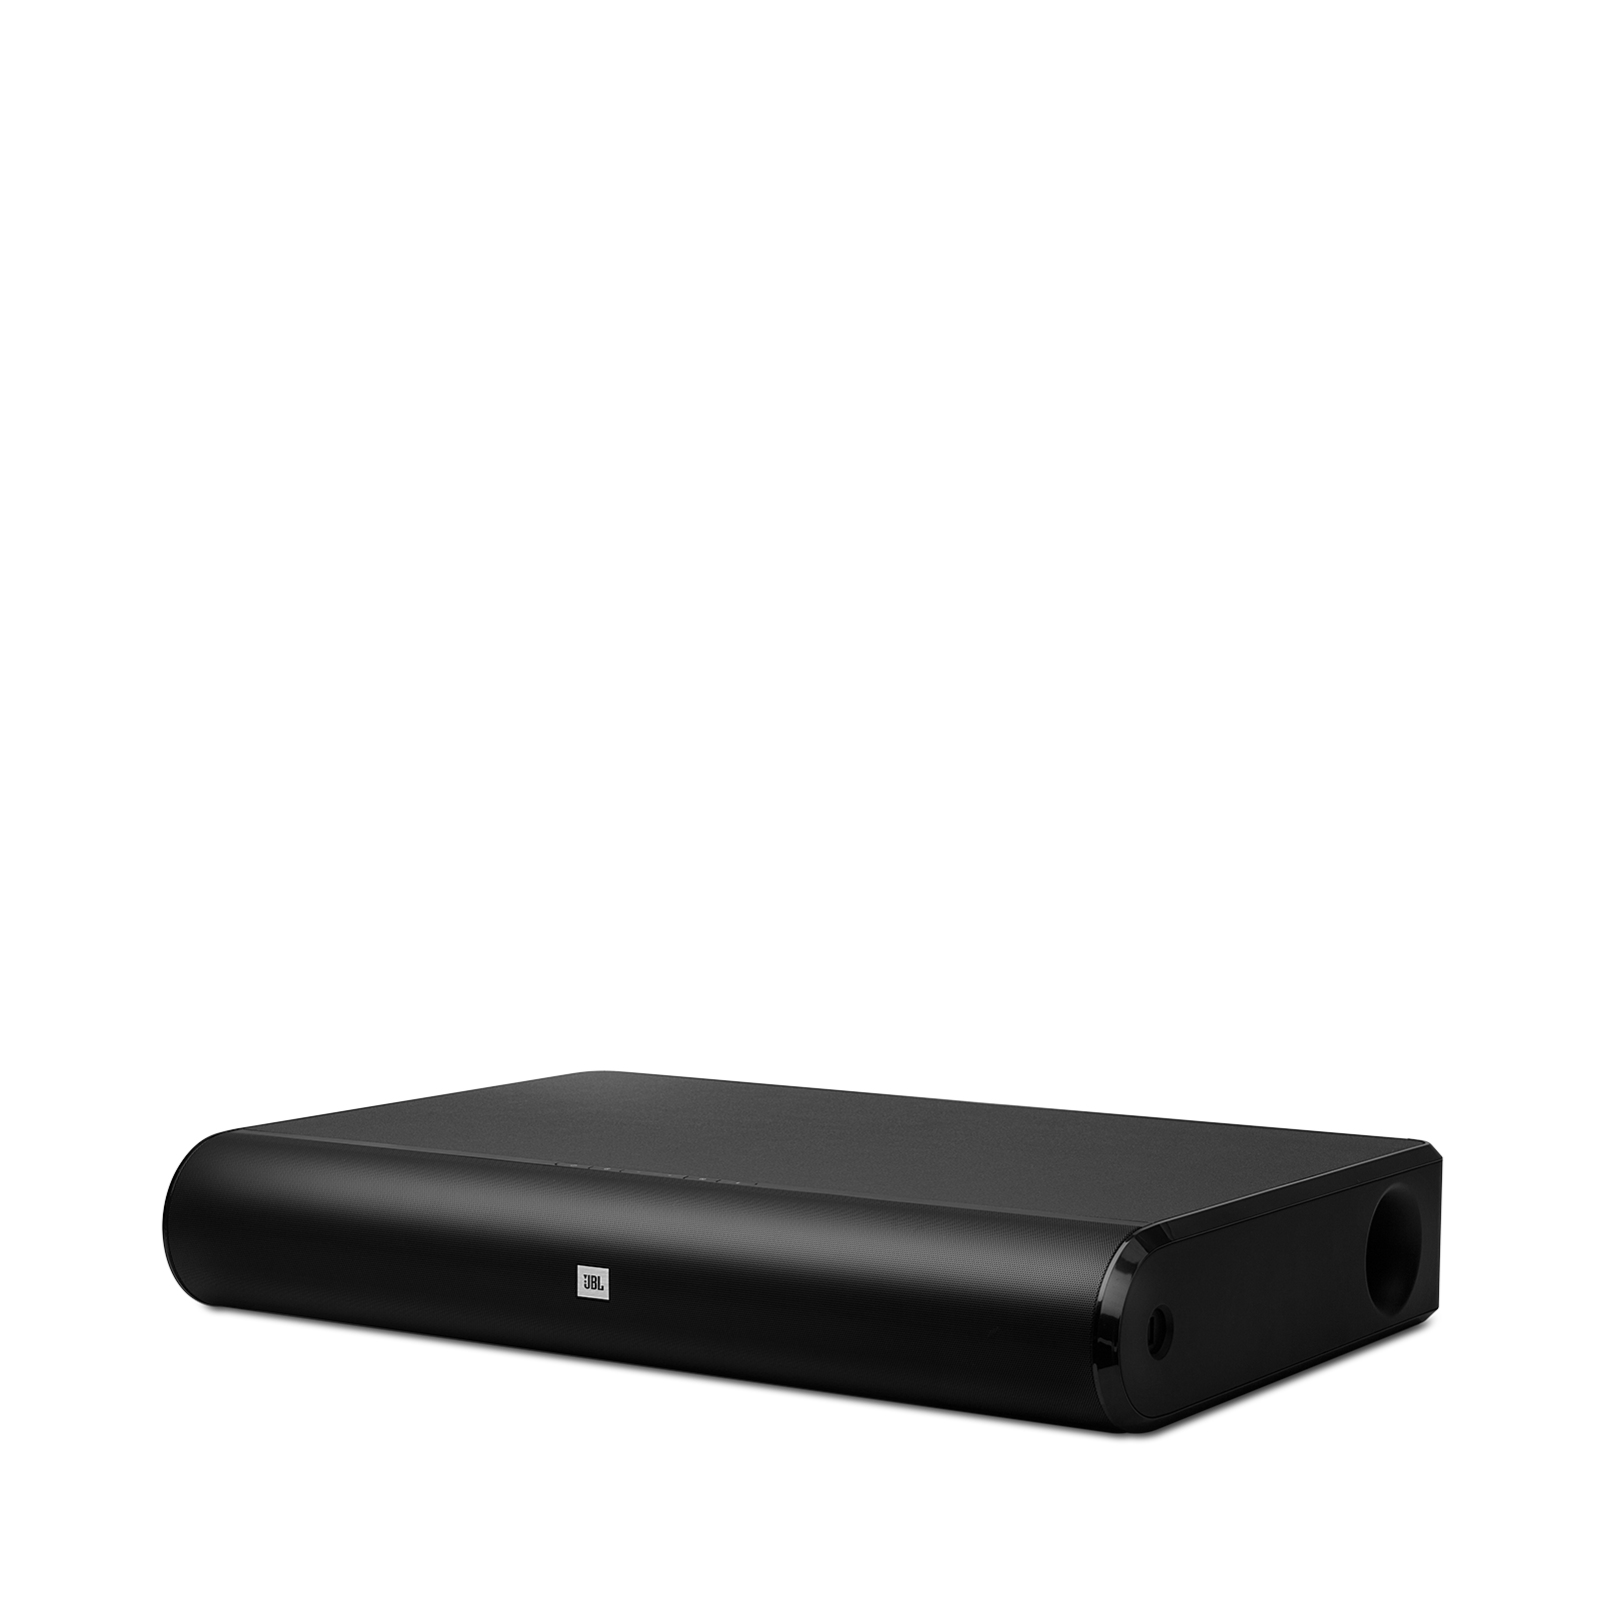 JBL Cinema Base - Black - Home cinema 2.2 all in one soundbase for television - Hero